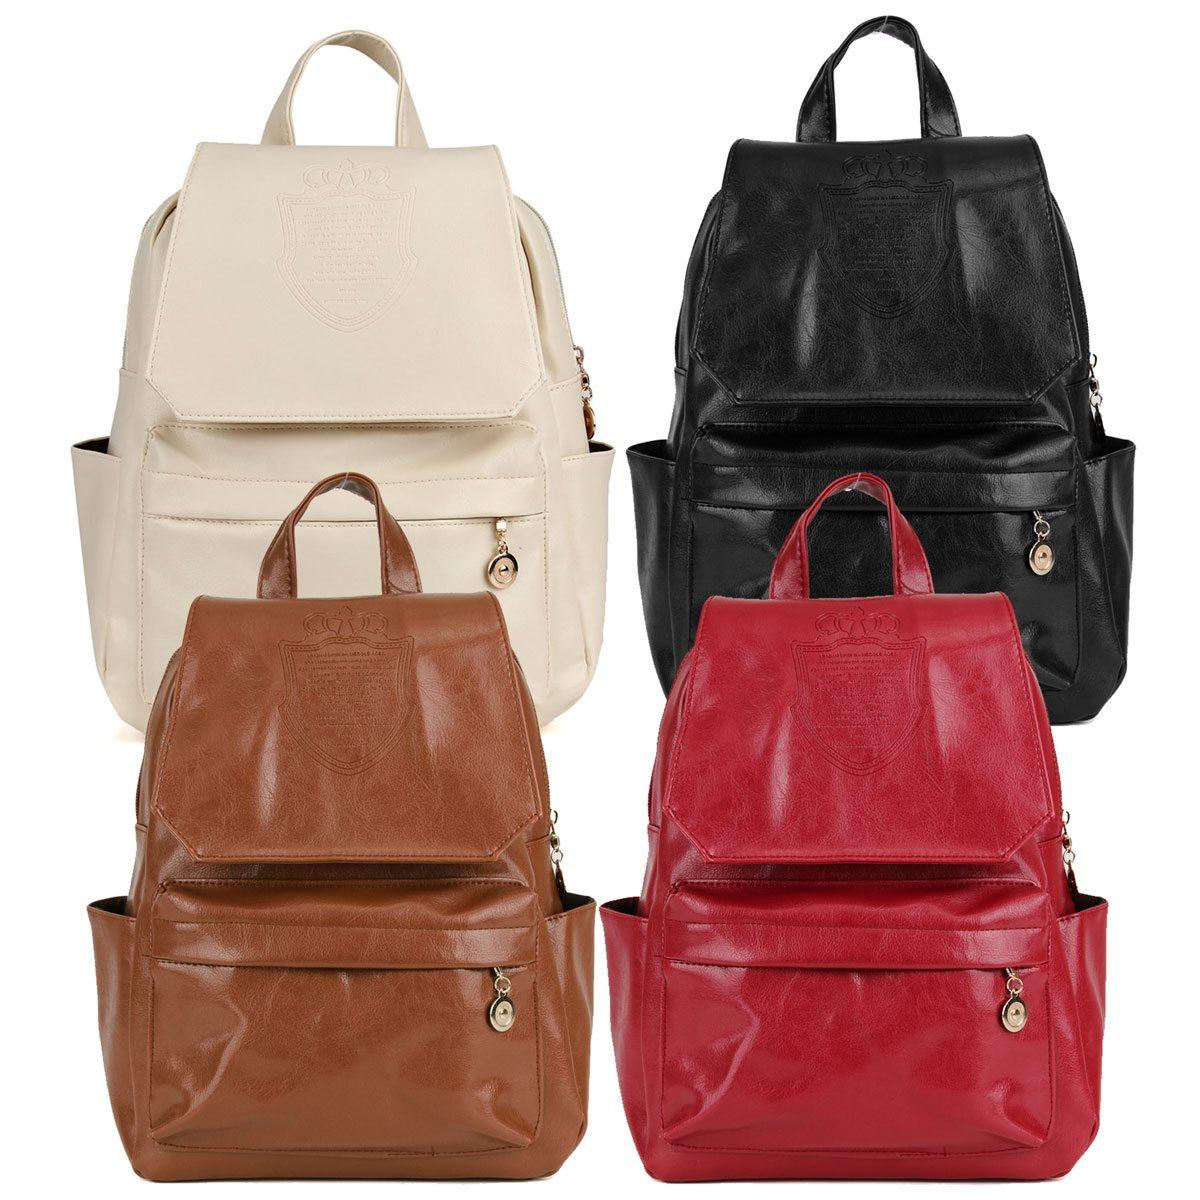 Fashion Backpacks For School RyQfrYhy